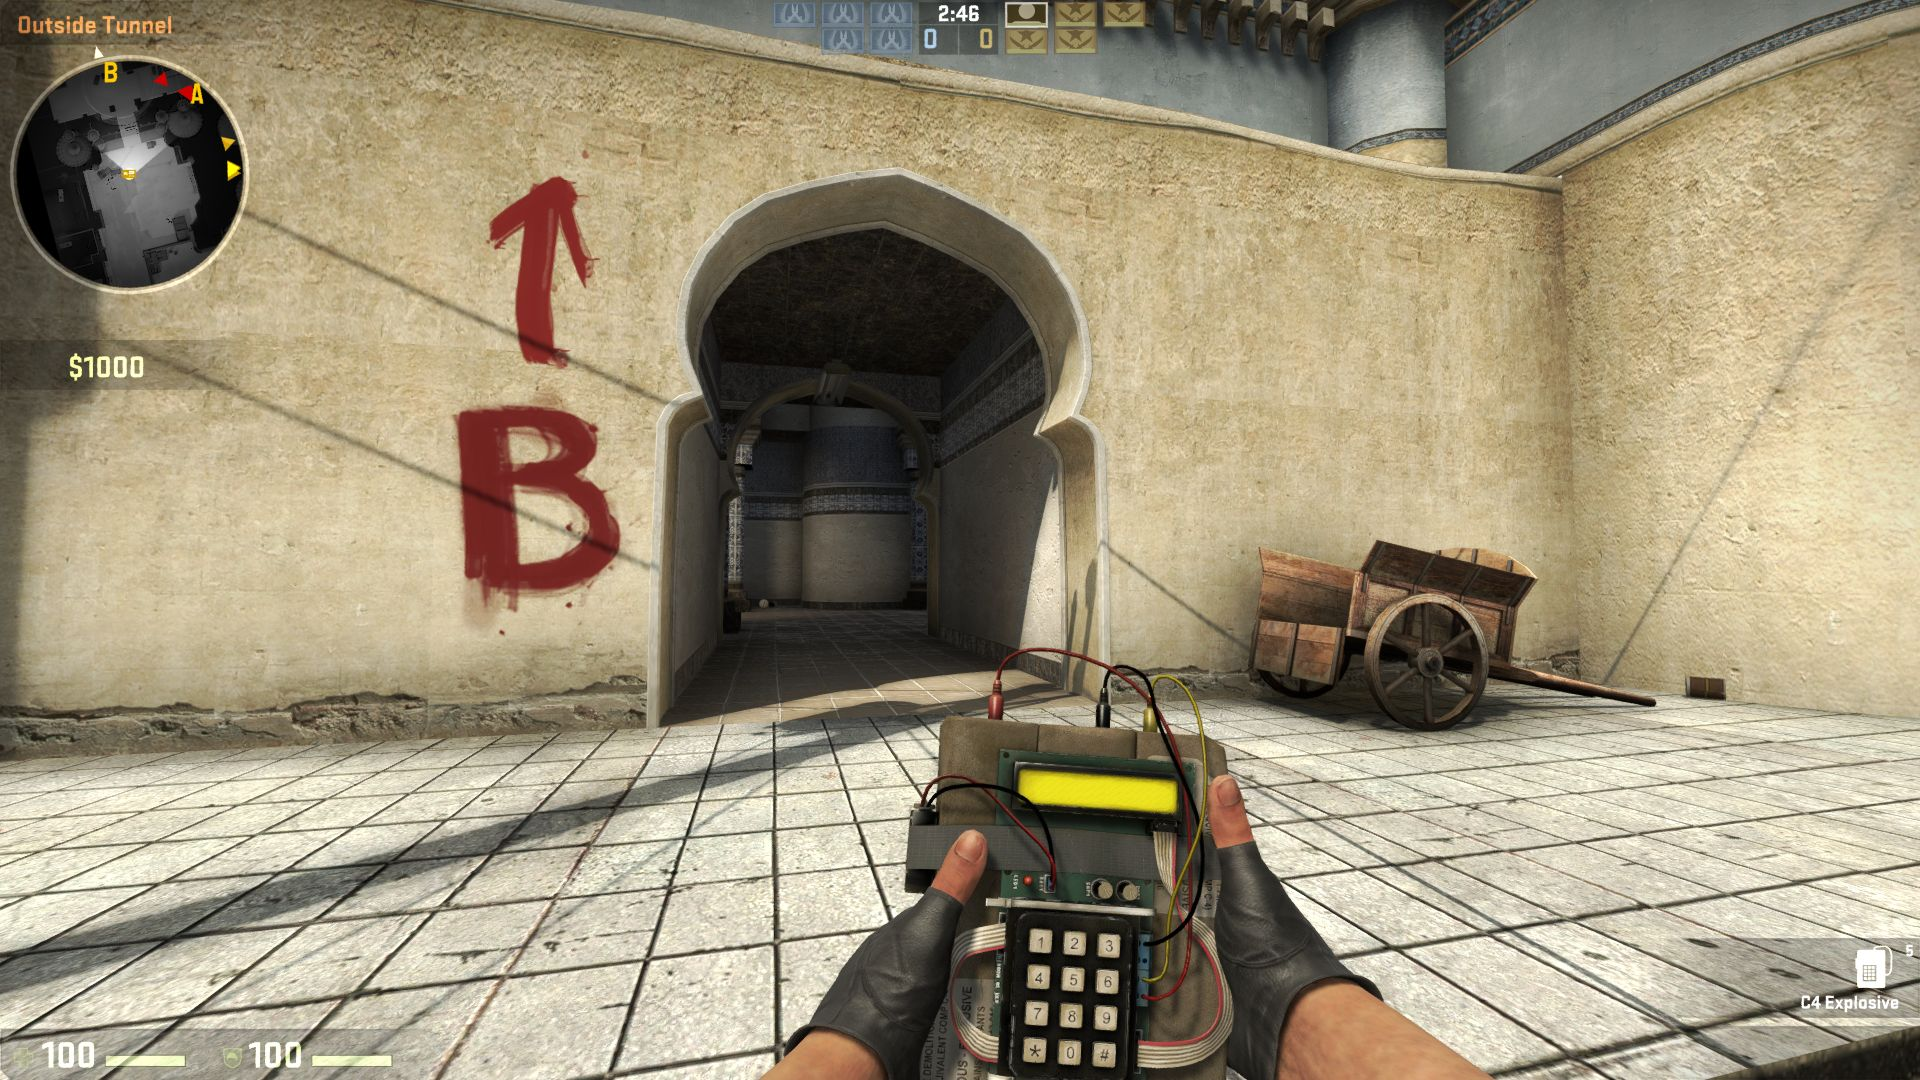 Battlefield 3 Iphone Wallpaper Counter Strike Global Offensive Benchmarked